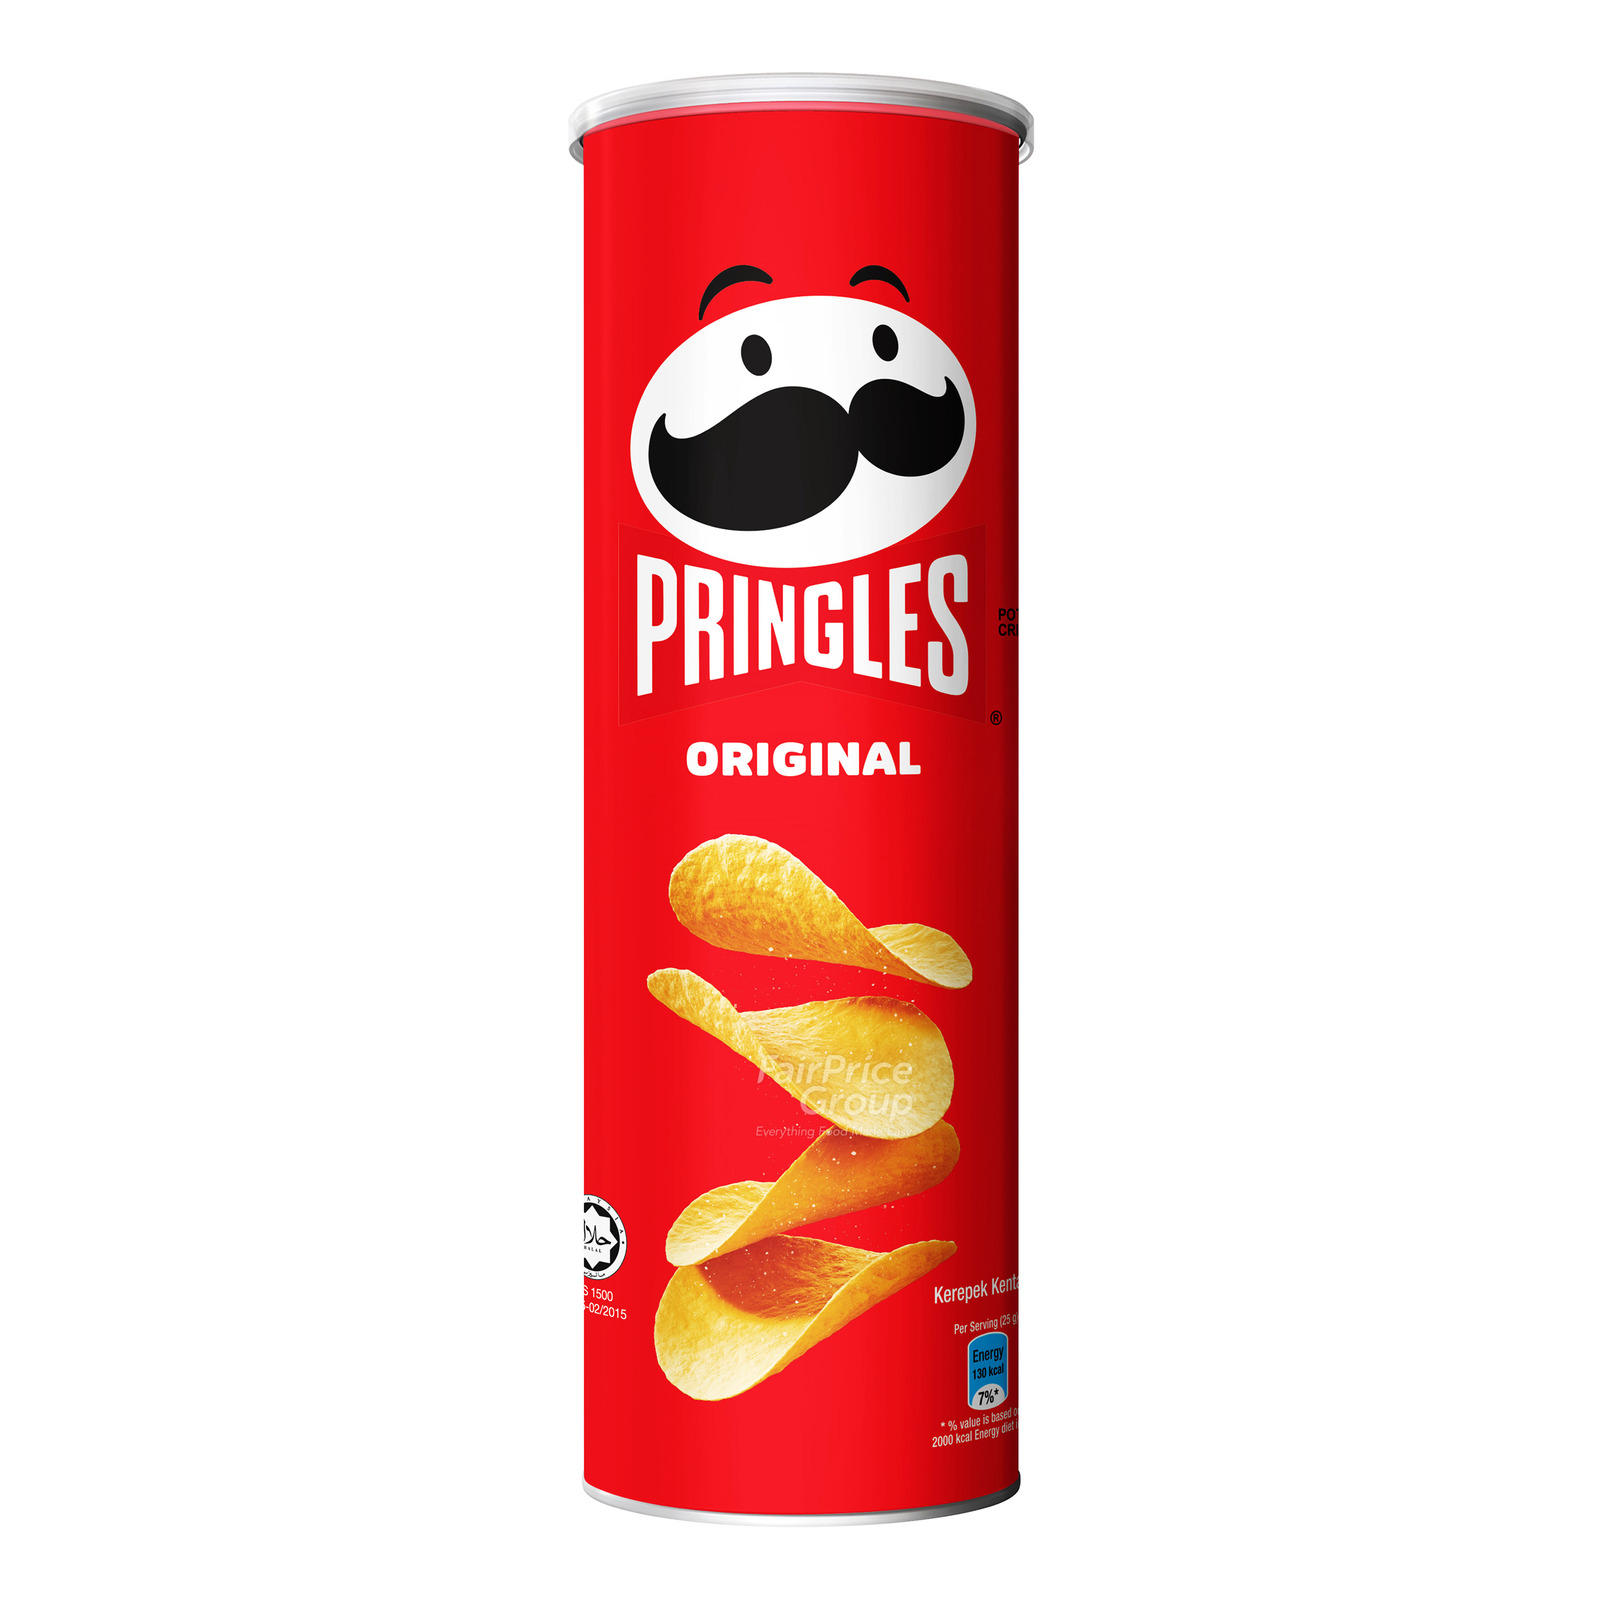 Pringles Original Potato Crisps Chips